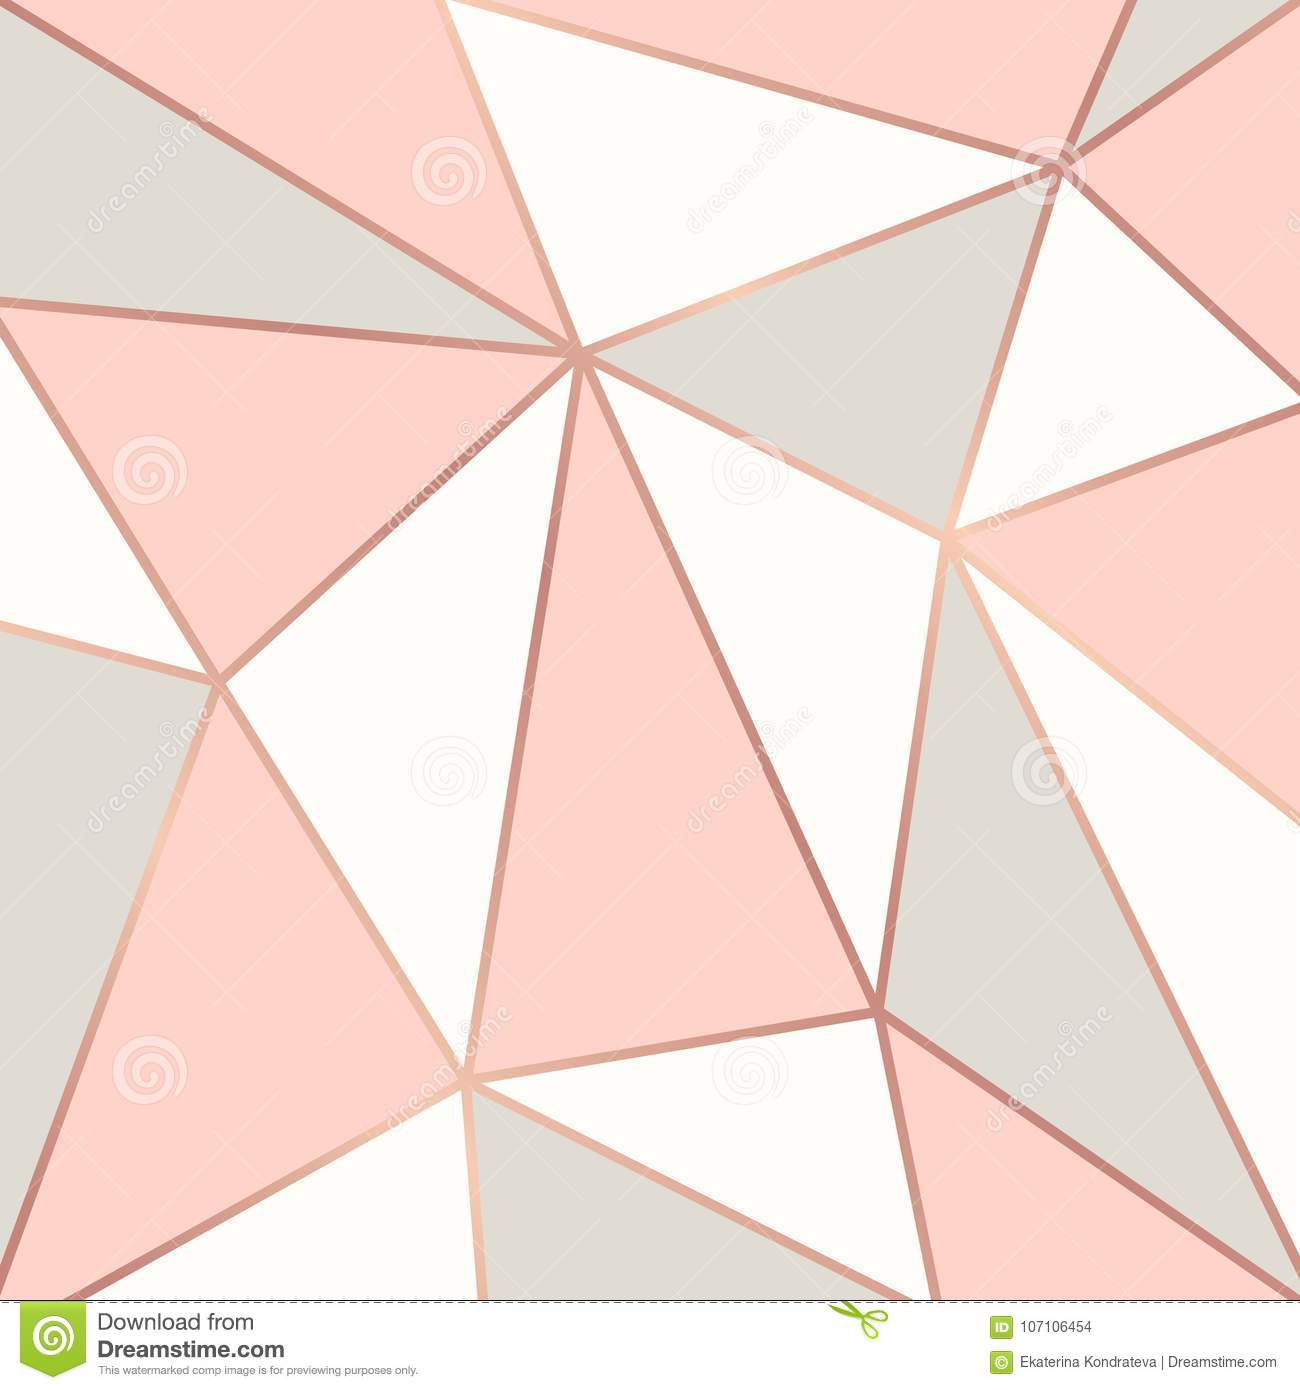 Geometric Wallpaper Hd Polygonal Background With Rose Gold Frames Stock Vector